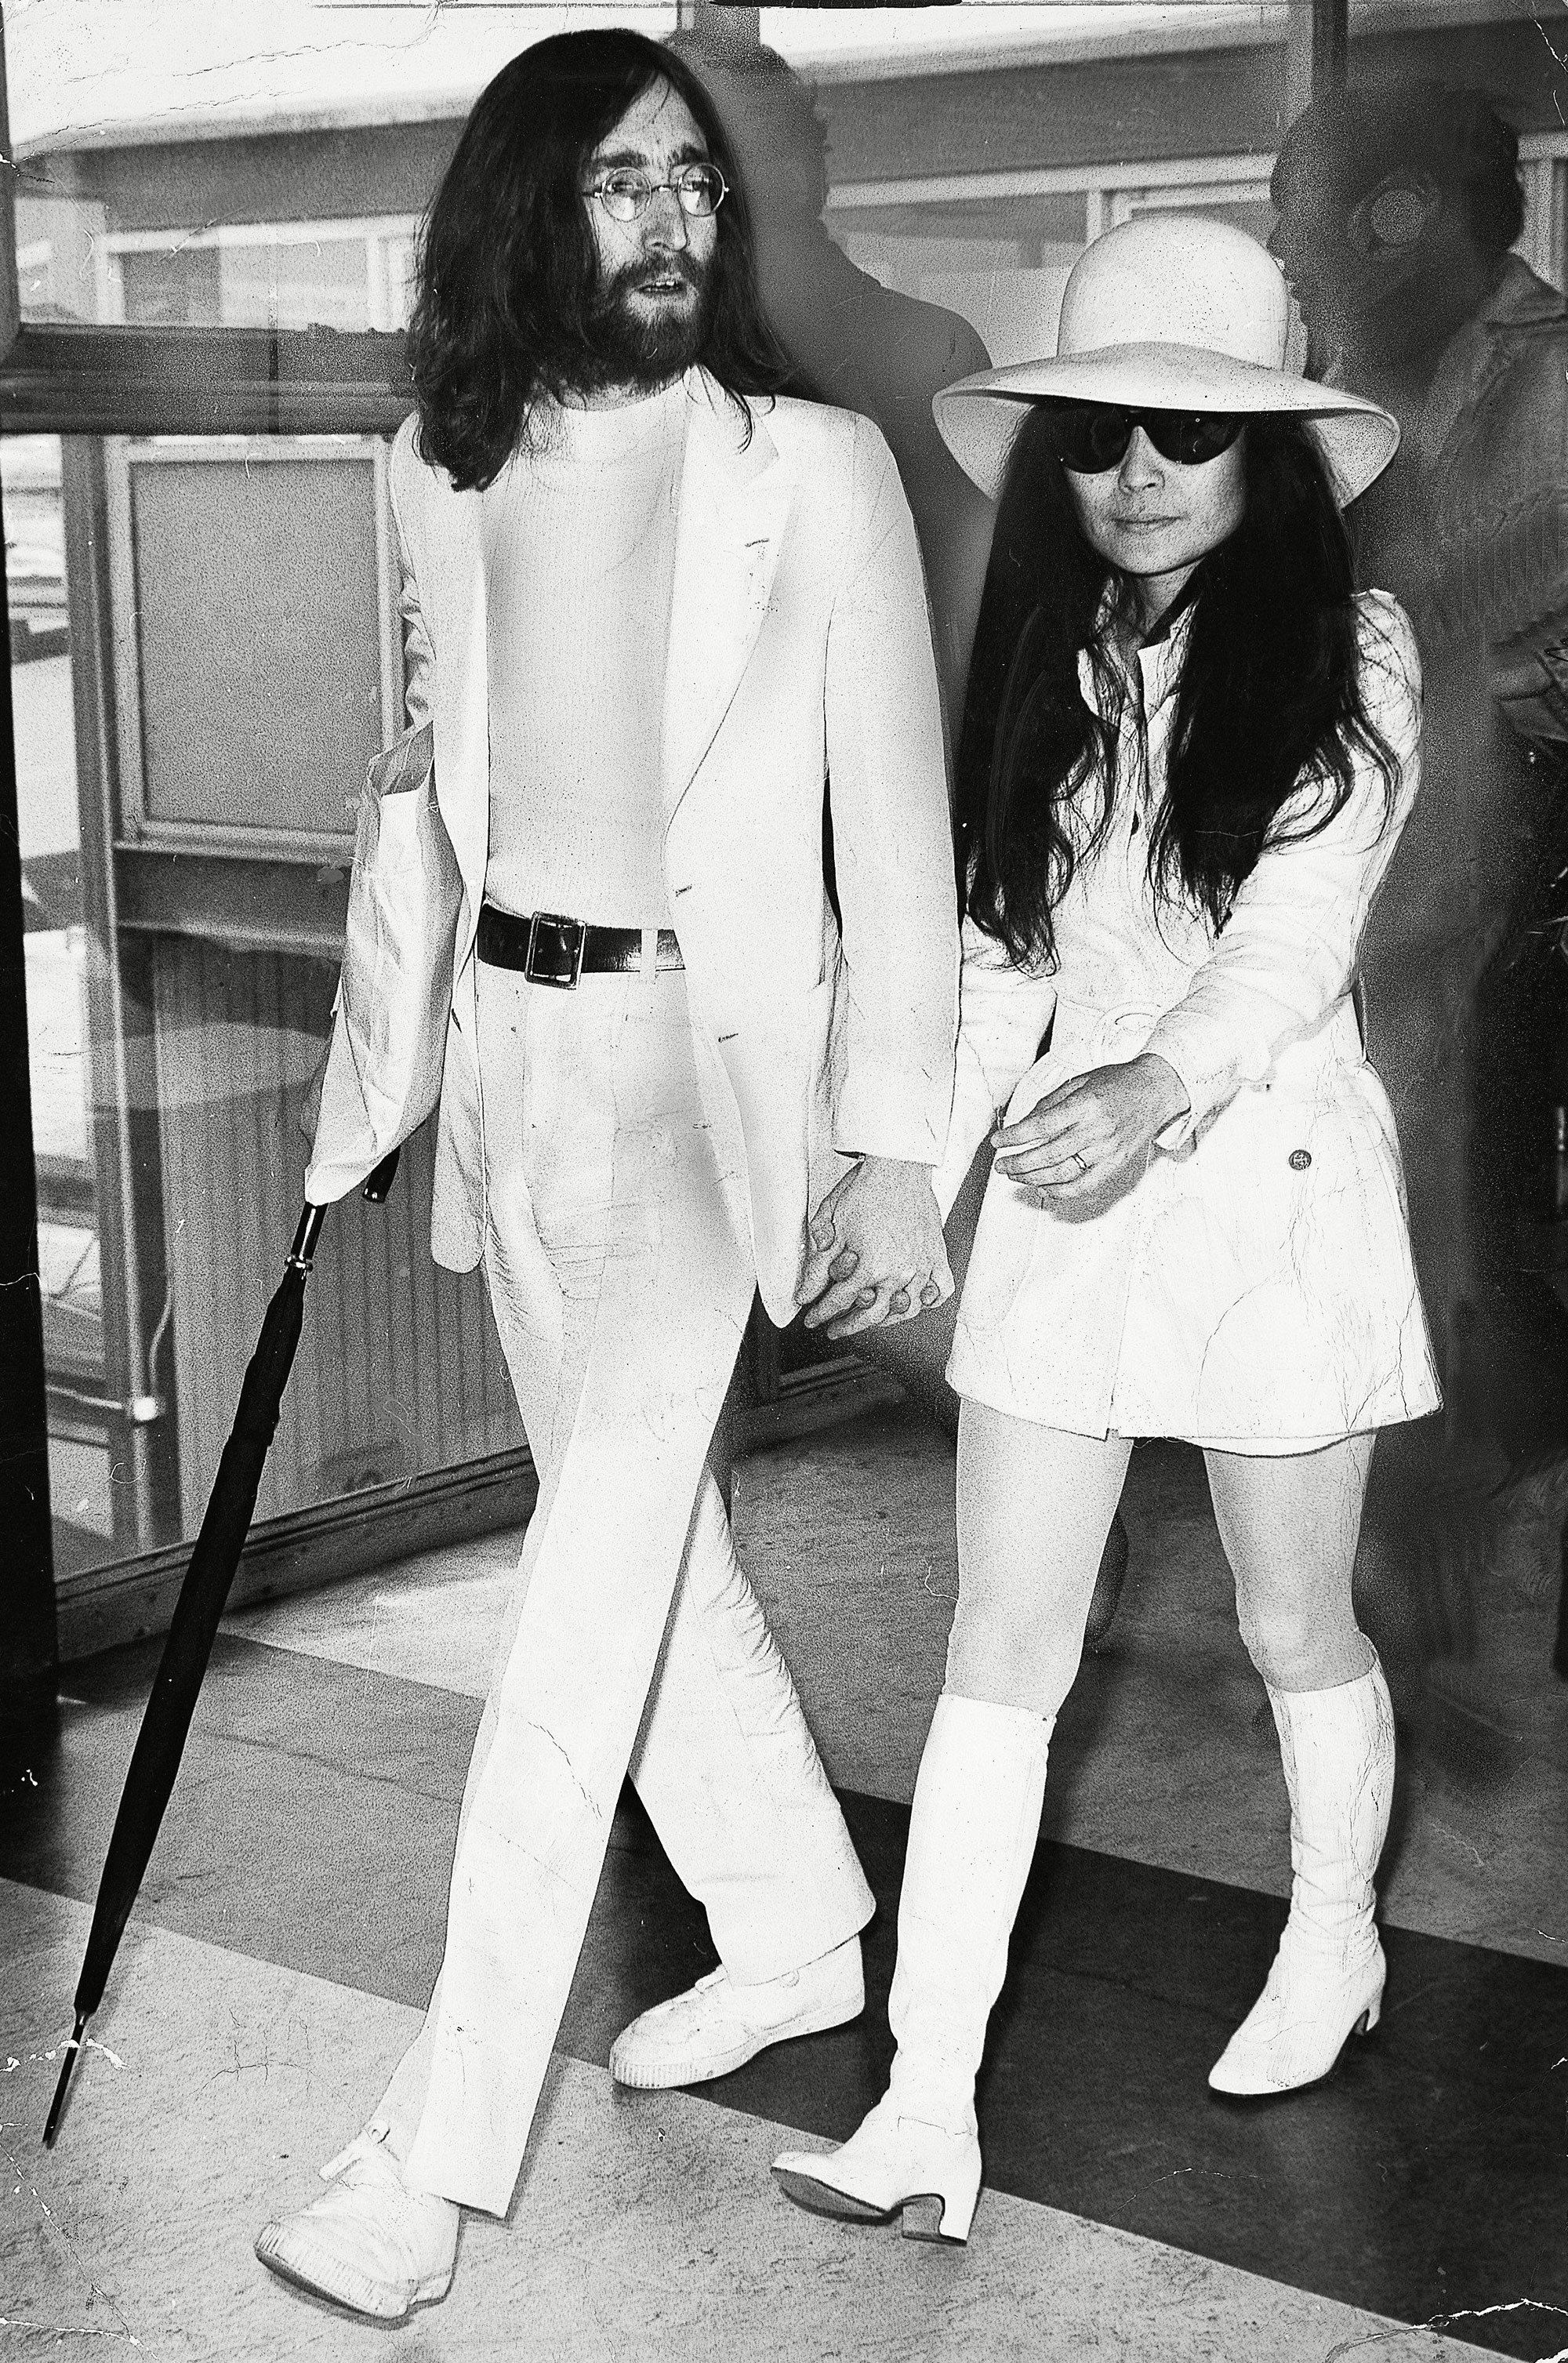 The Best Hairstyles For Long Hair Kim Kardashian West Gisele Bundchen And More John Lennon And Yoko Yoko Ono Yoko